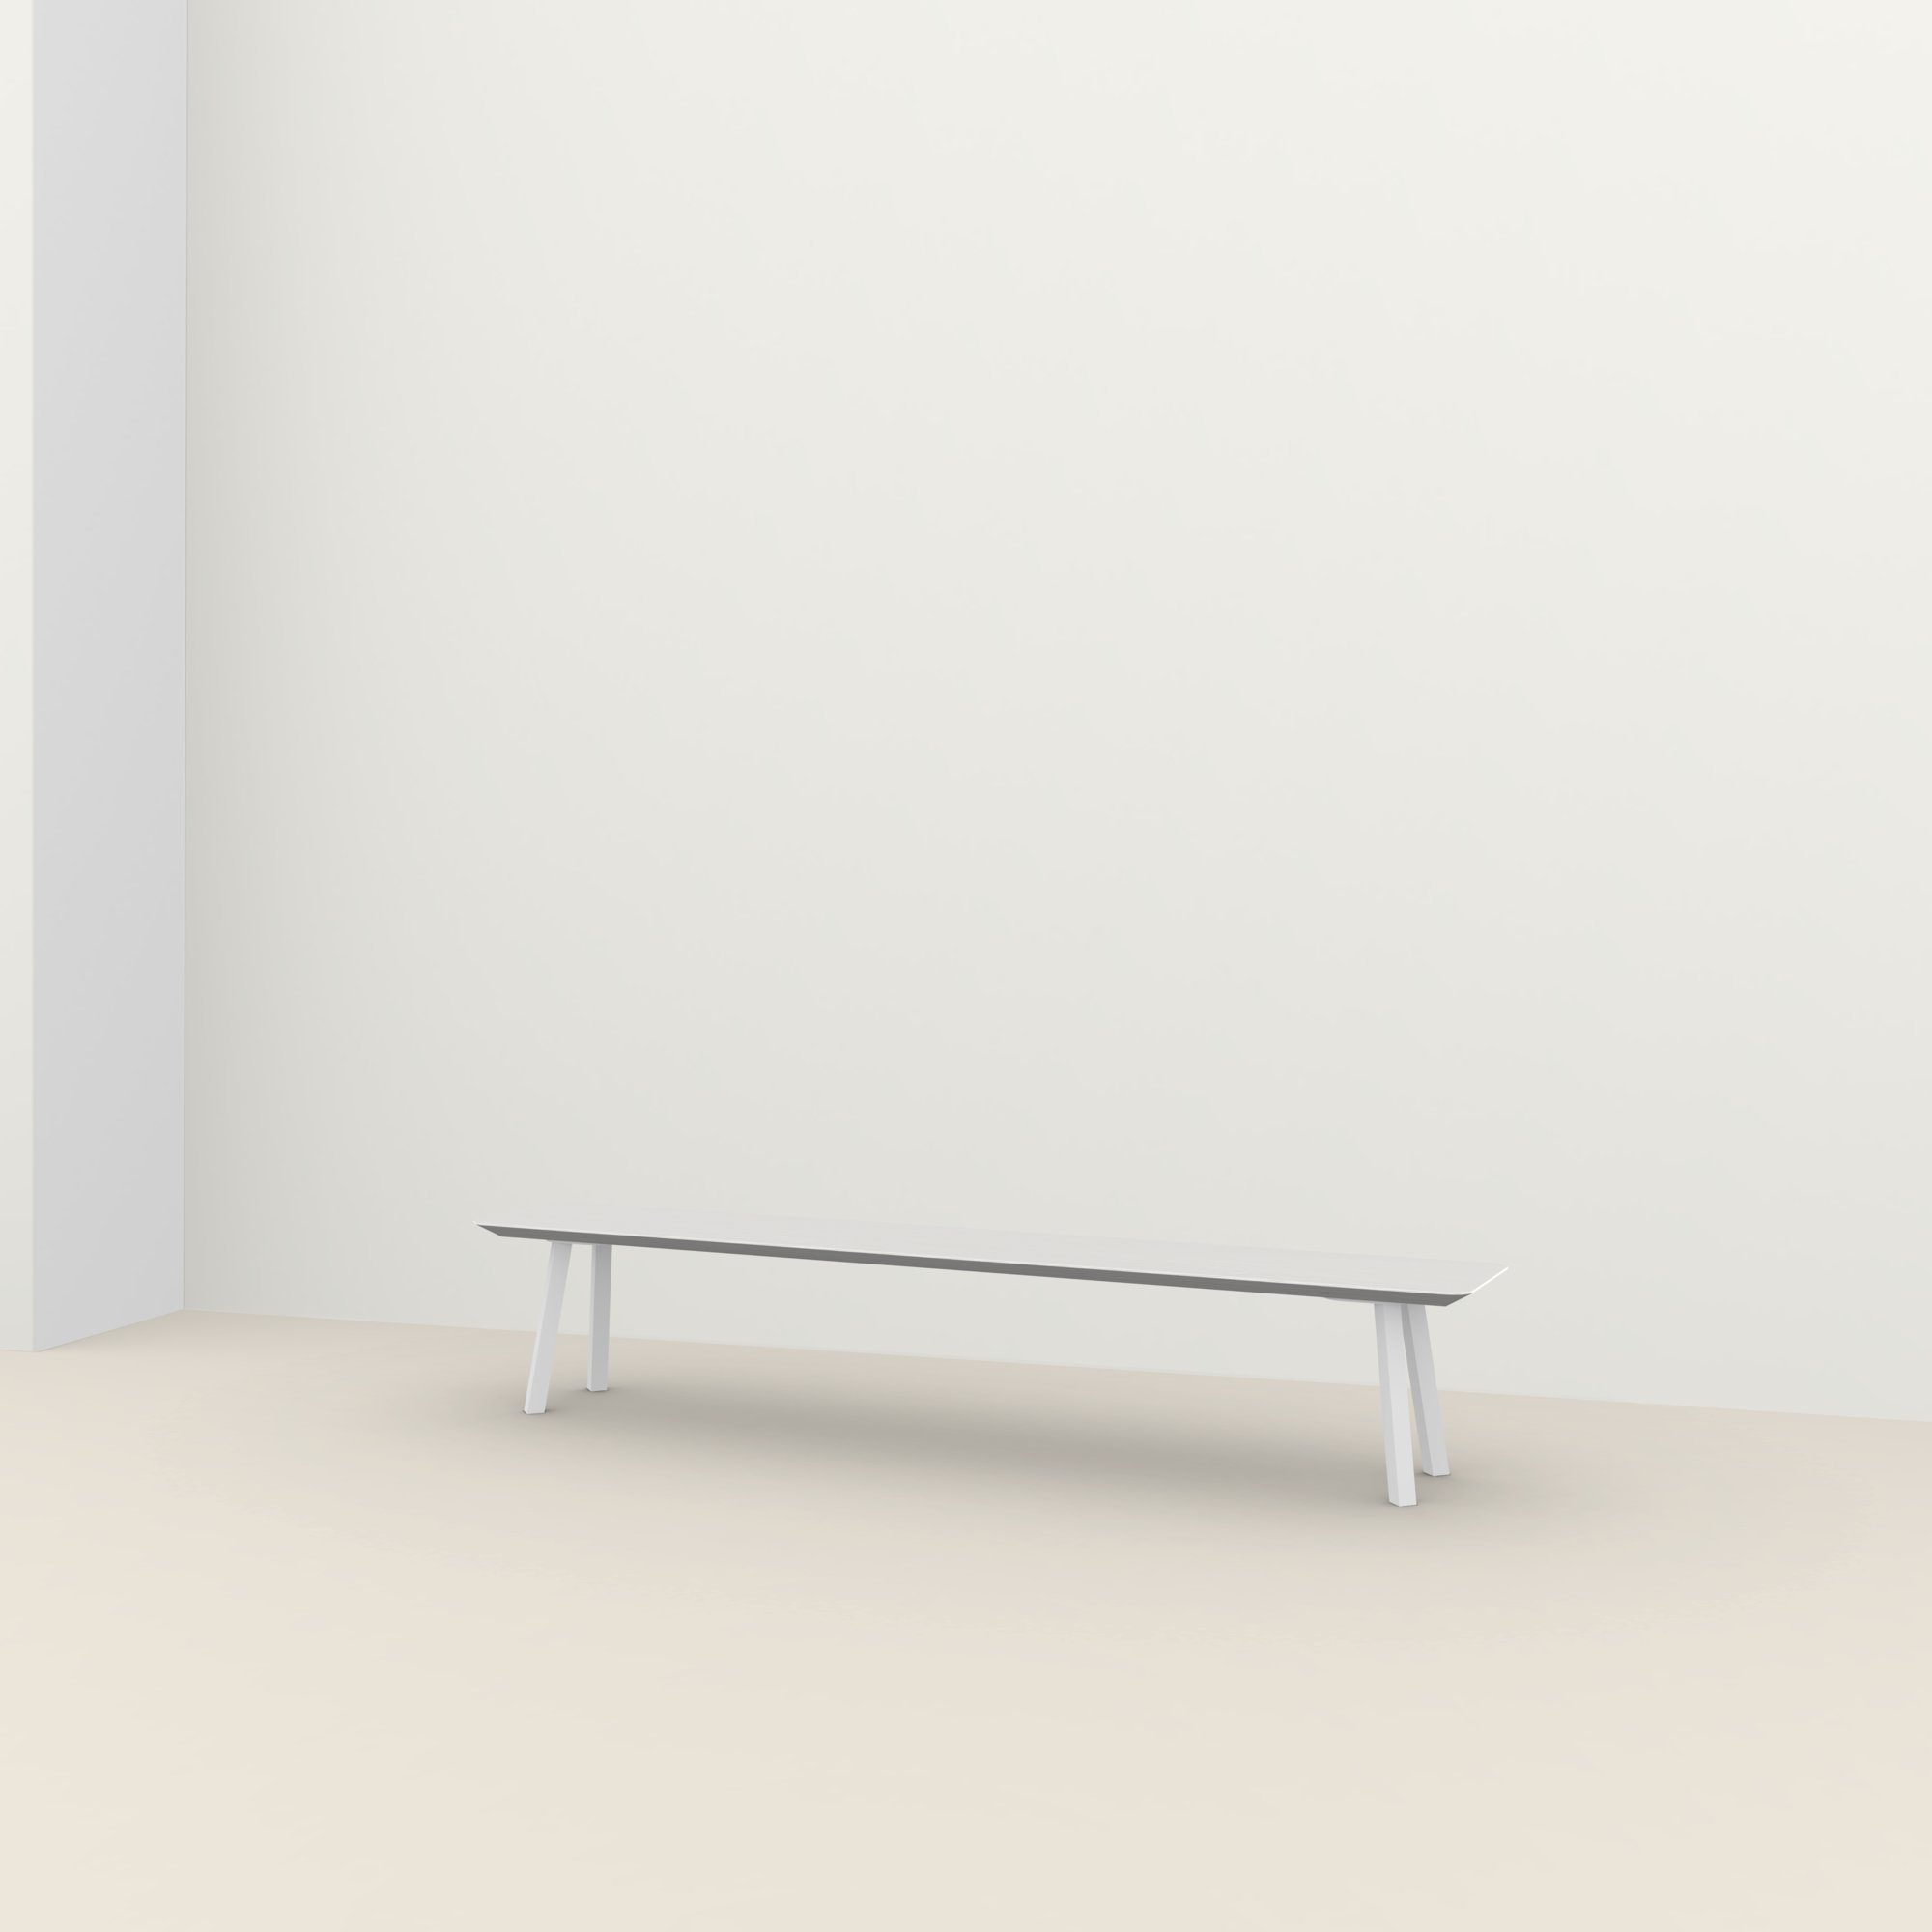 eettafelbank op maat | New Classic Bench Steel white powdercoating | Oak white lacquer | Studio HENK |